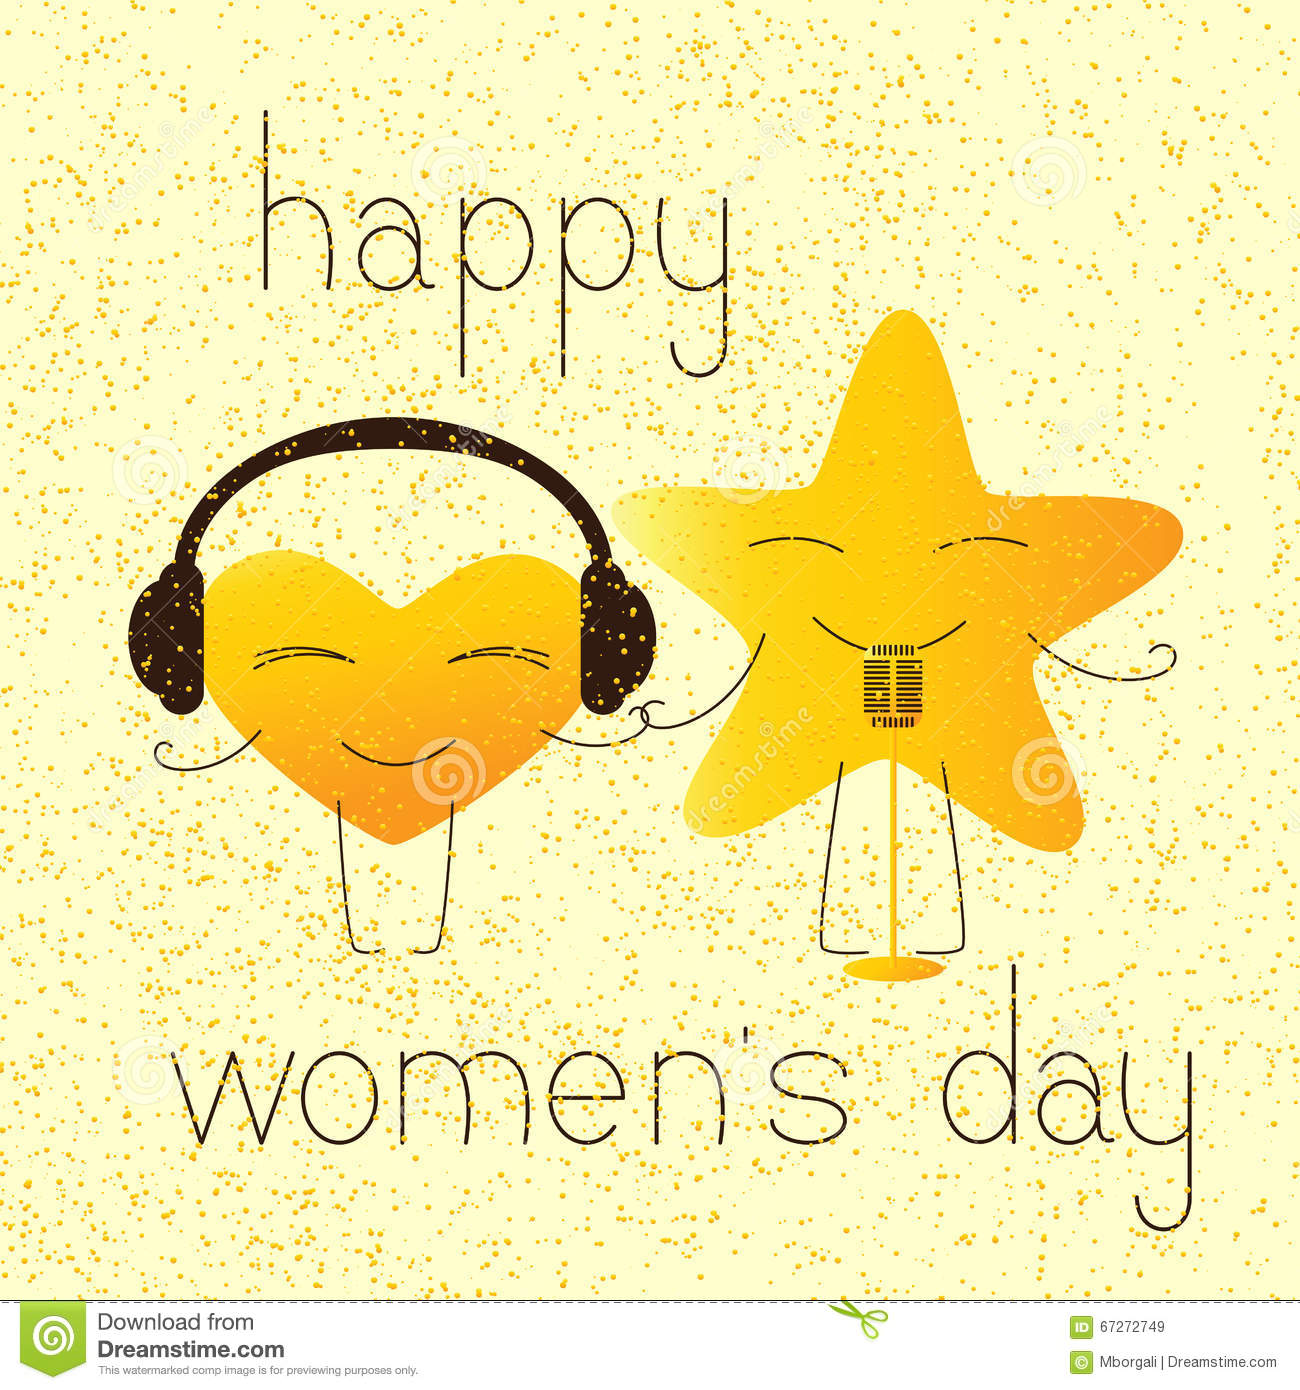 Happy Womens Day Greeting Card With Musical Characters Illustration